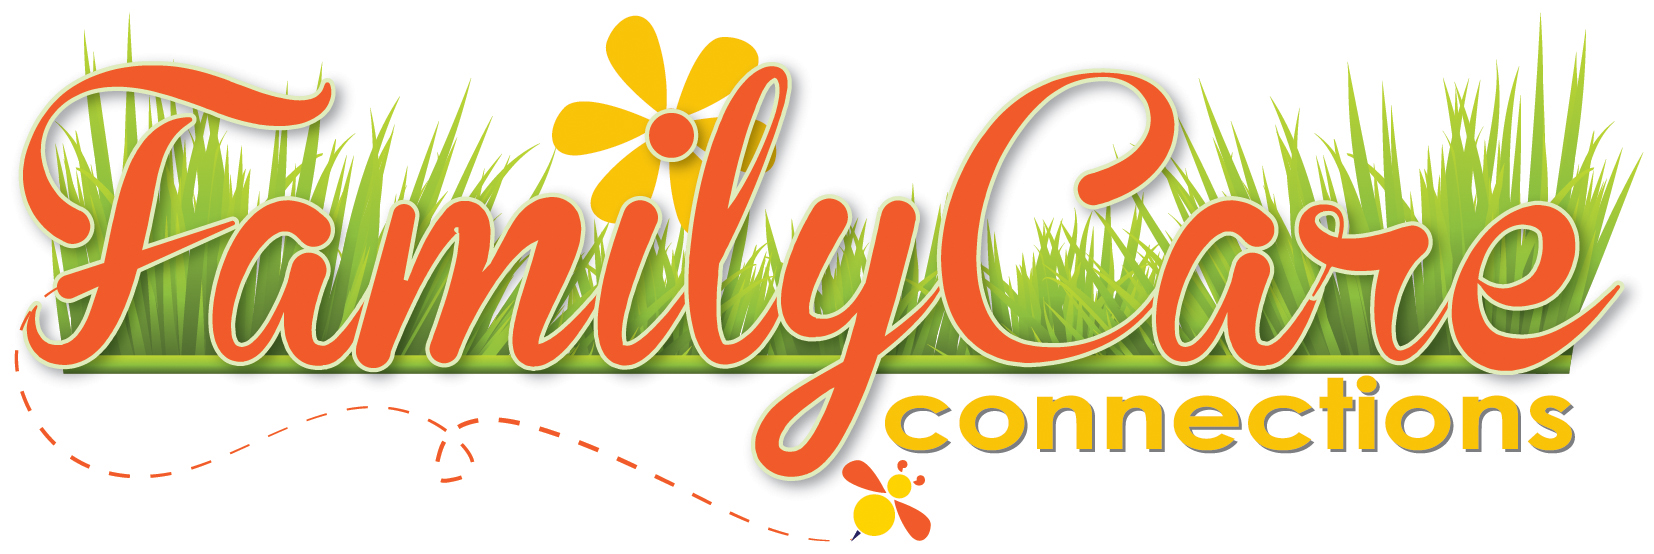 Family-Care-Connections-Logo-1-1.jpg